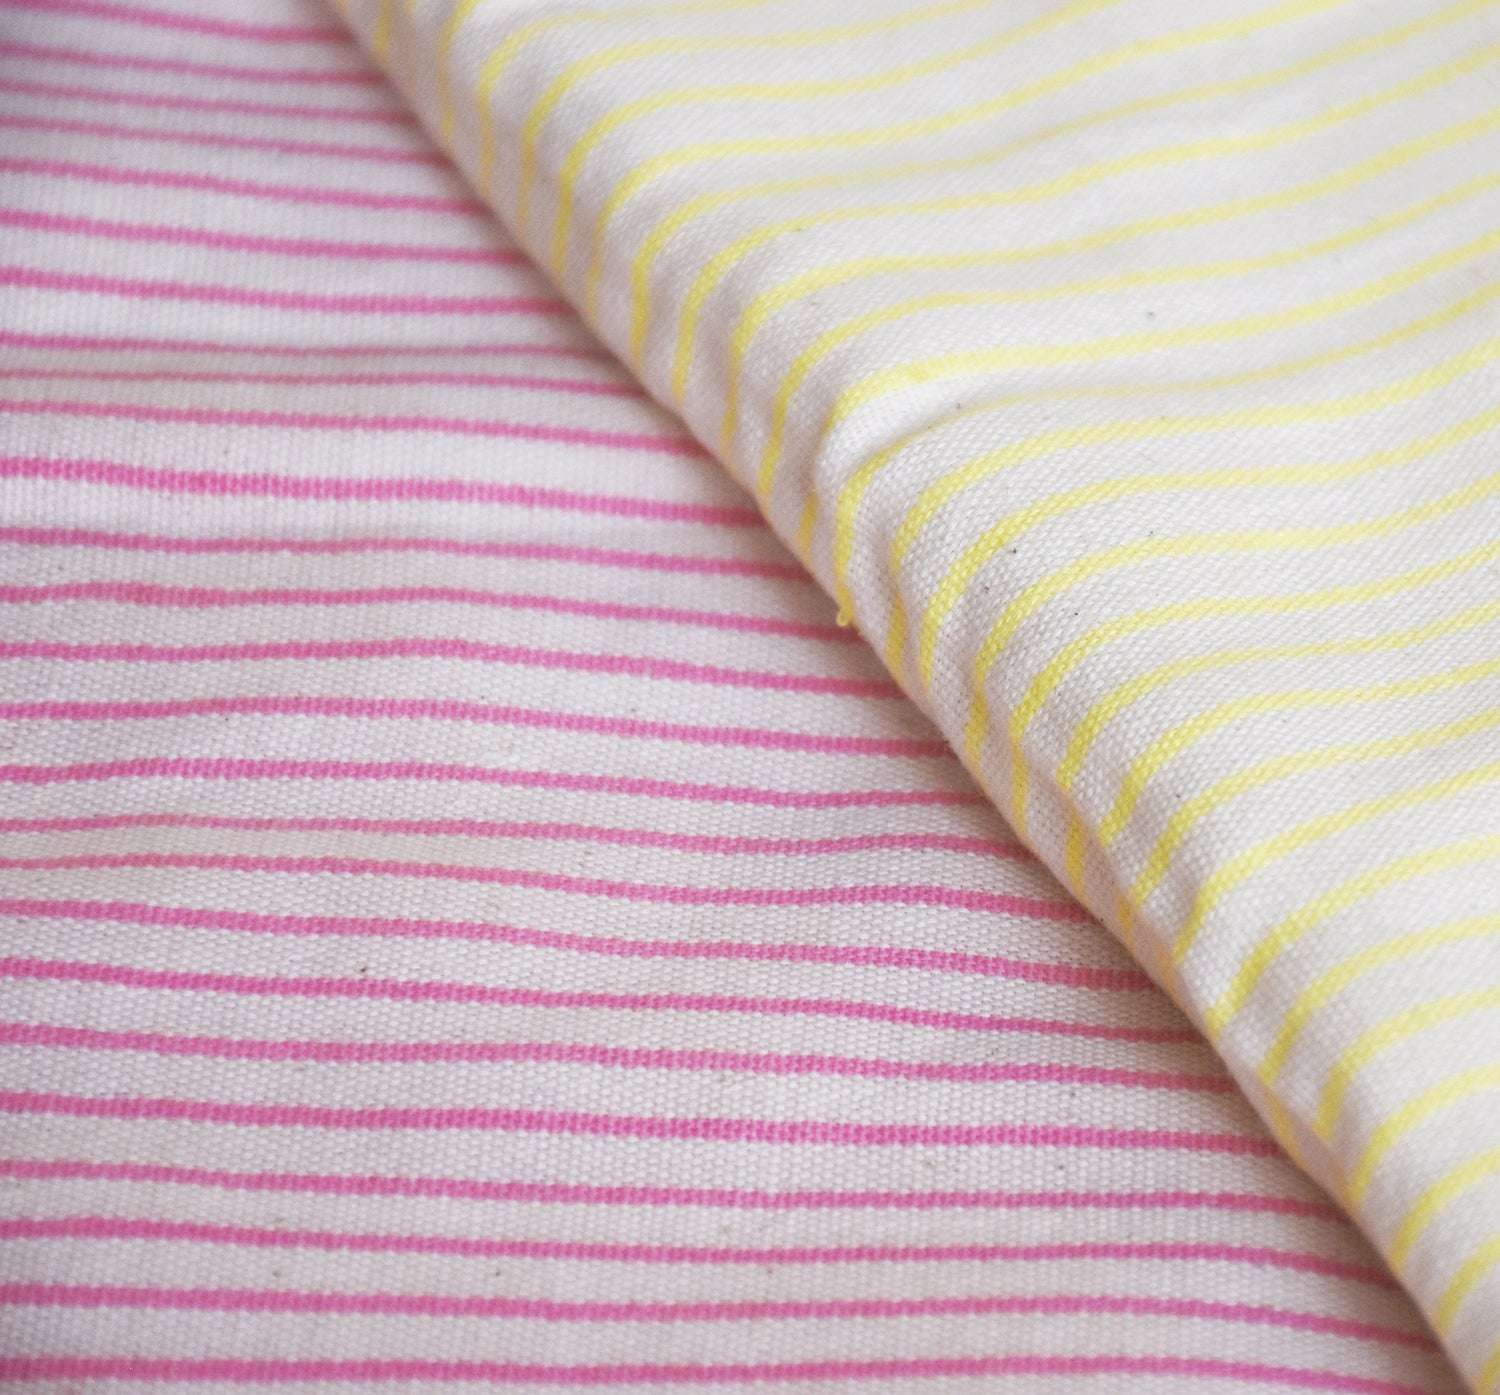 Apple Stripe Textile